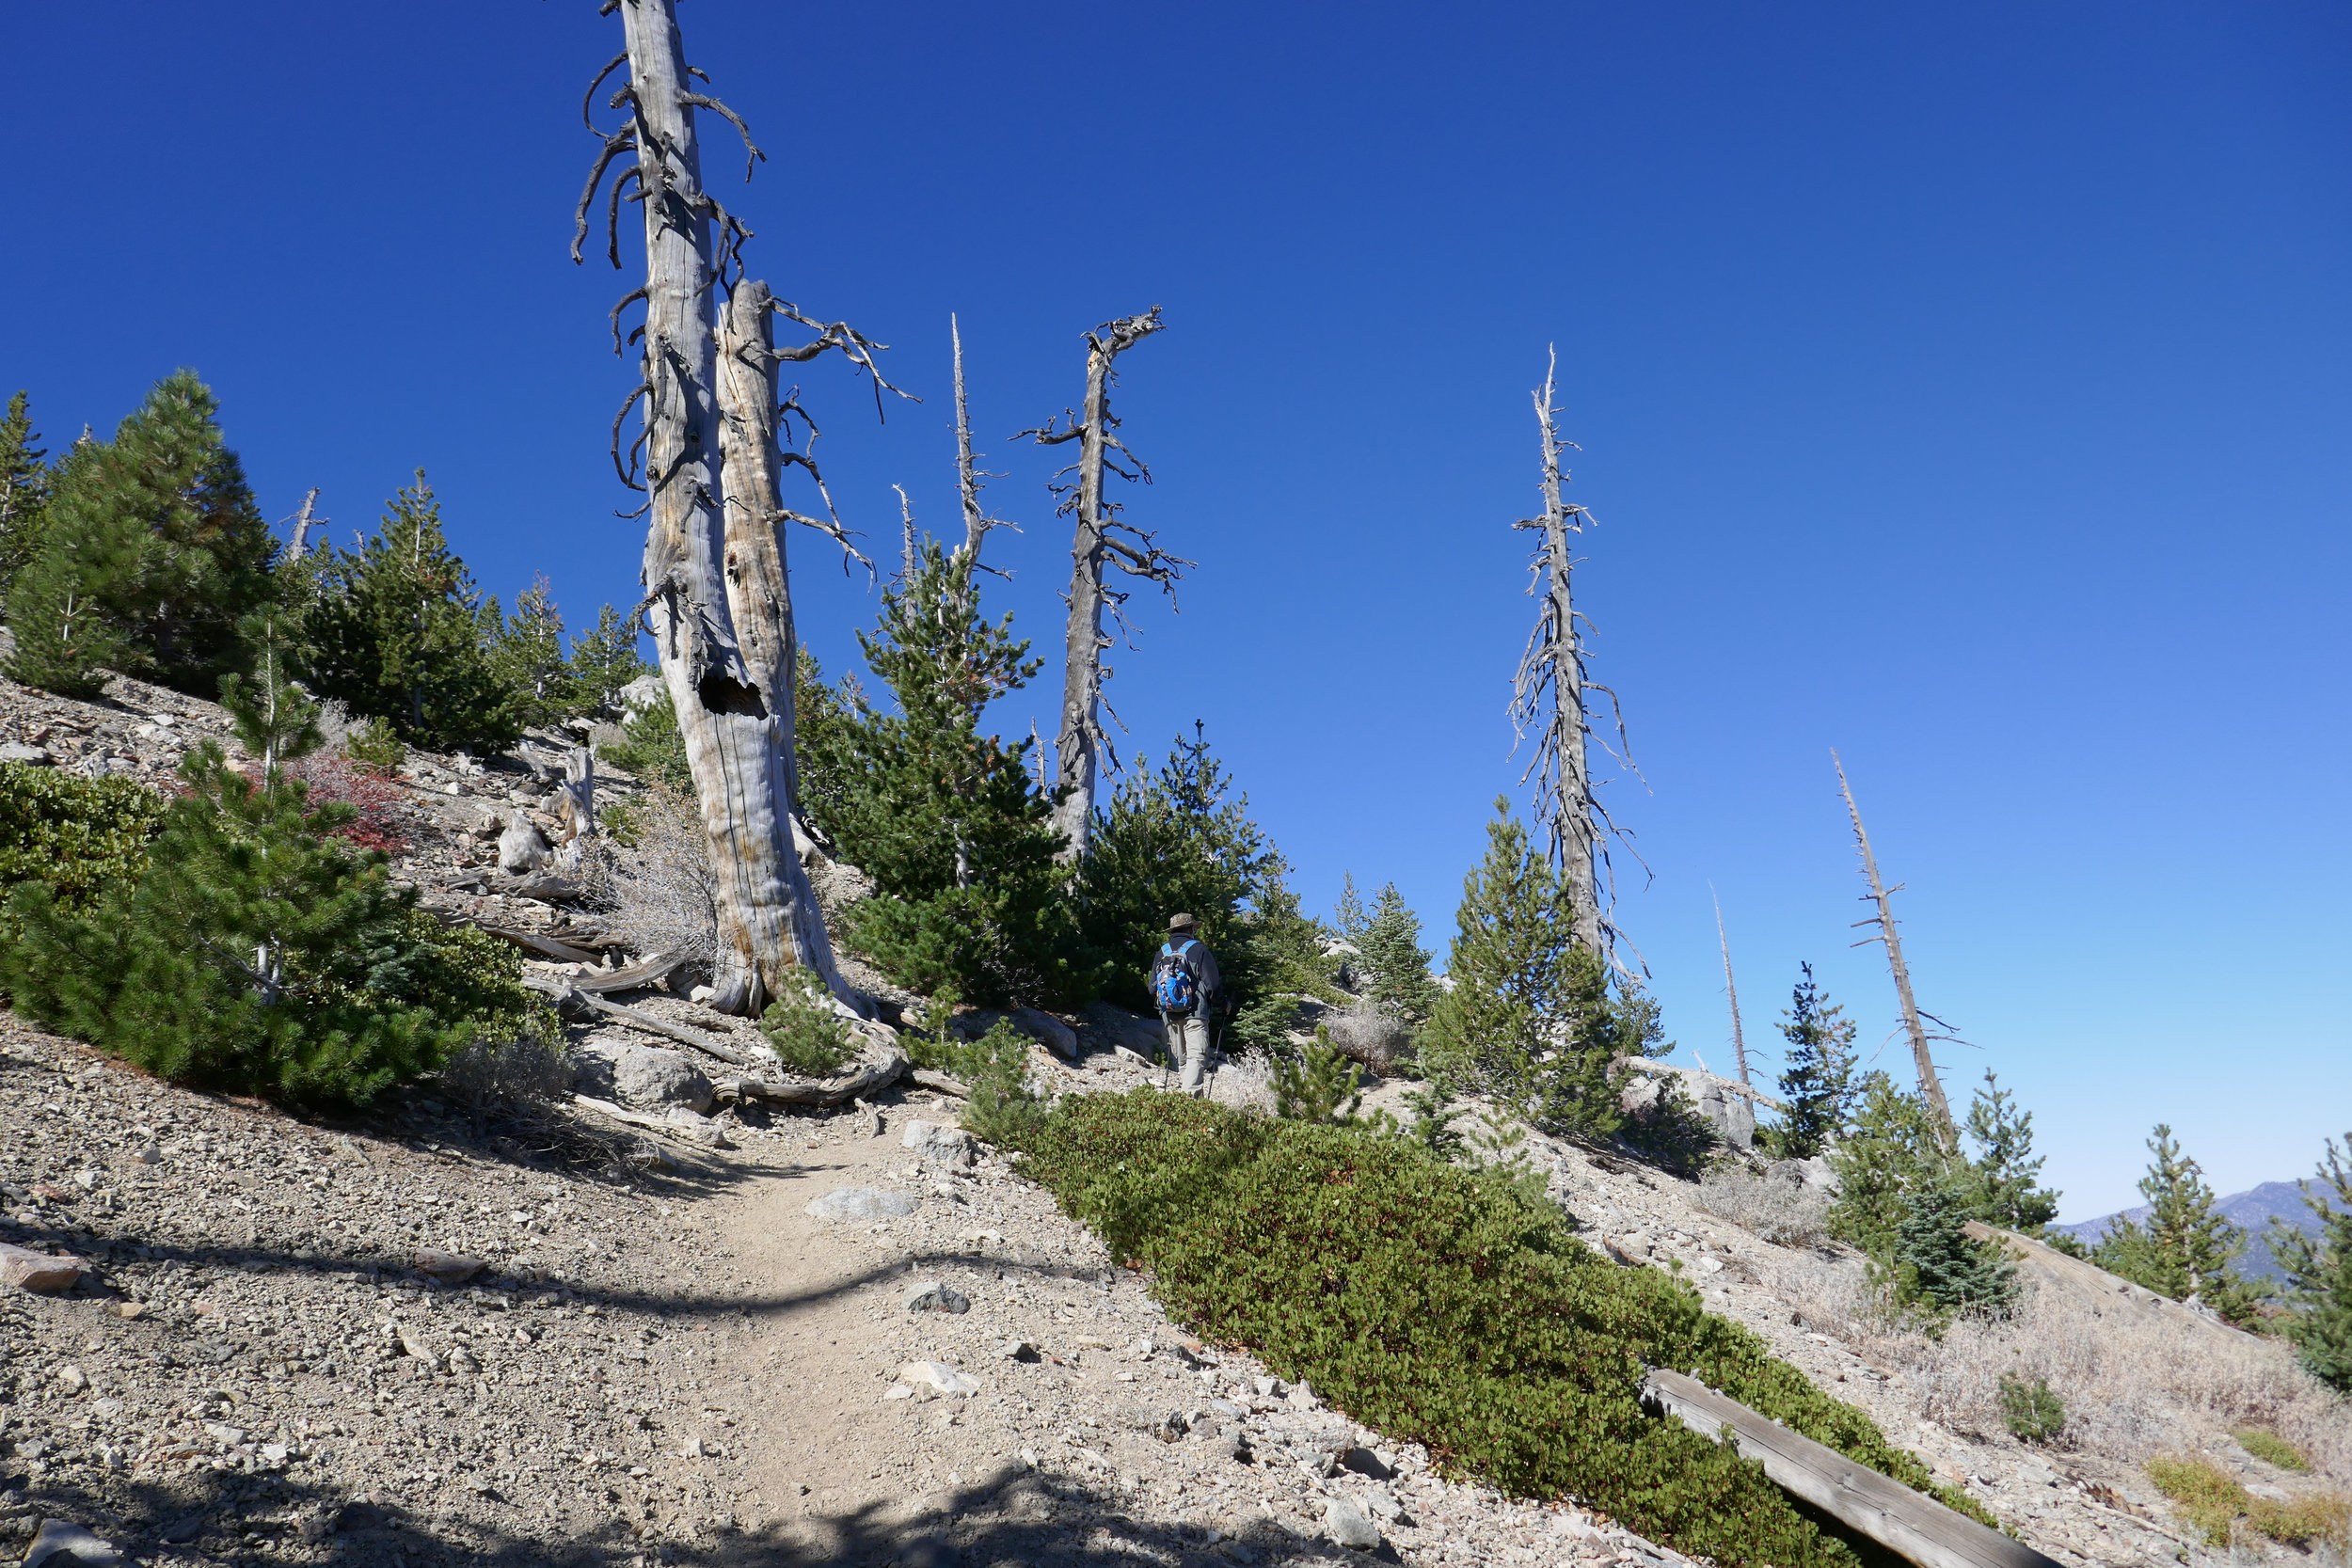 The push to the summit goes through a series of switchbacks. It's a slow but steady climb with breath taking views.